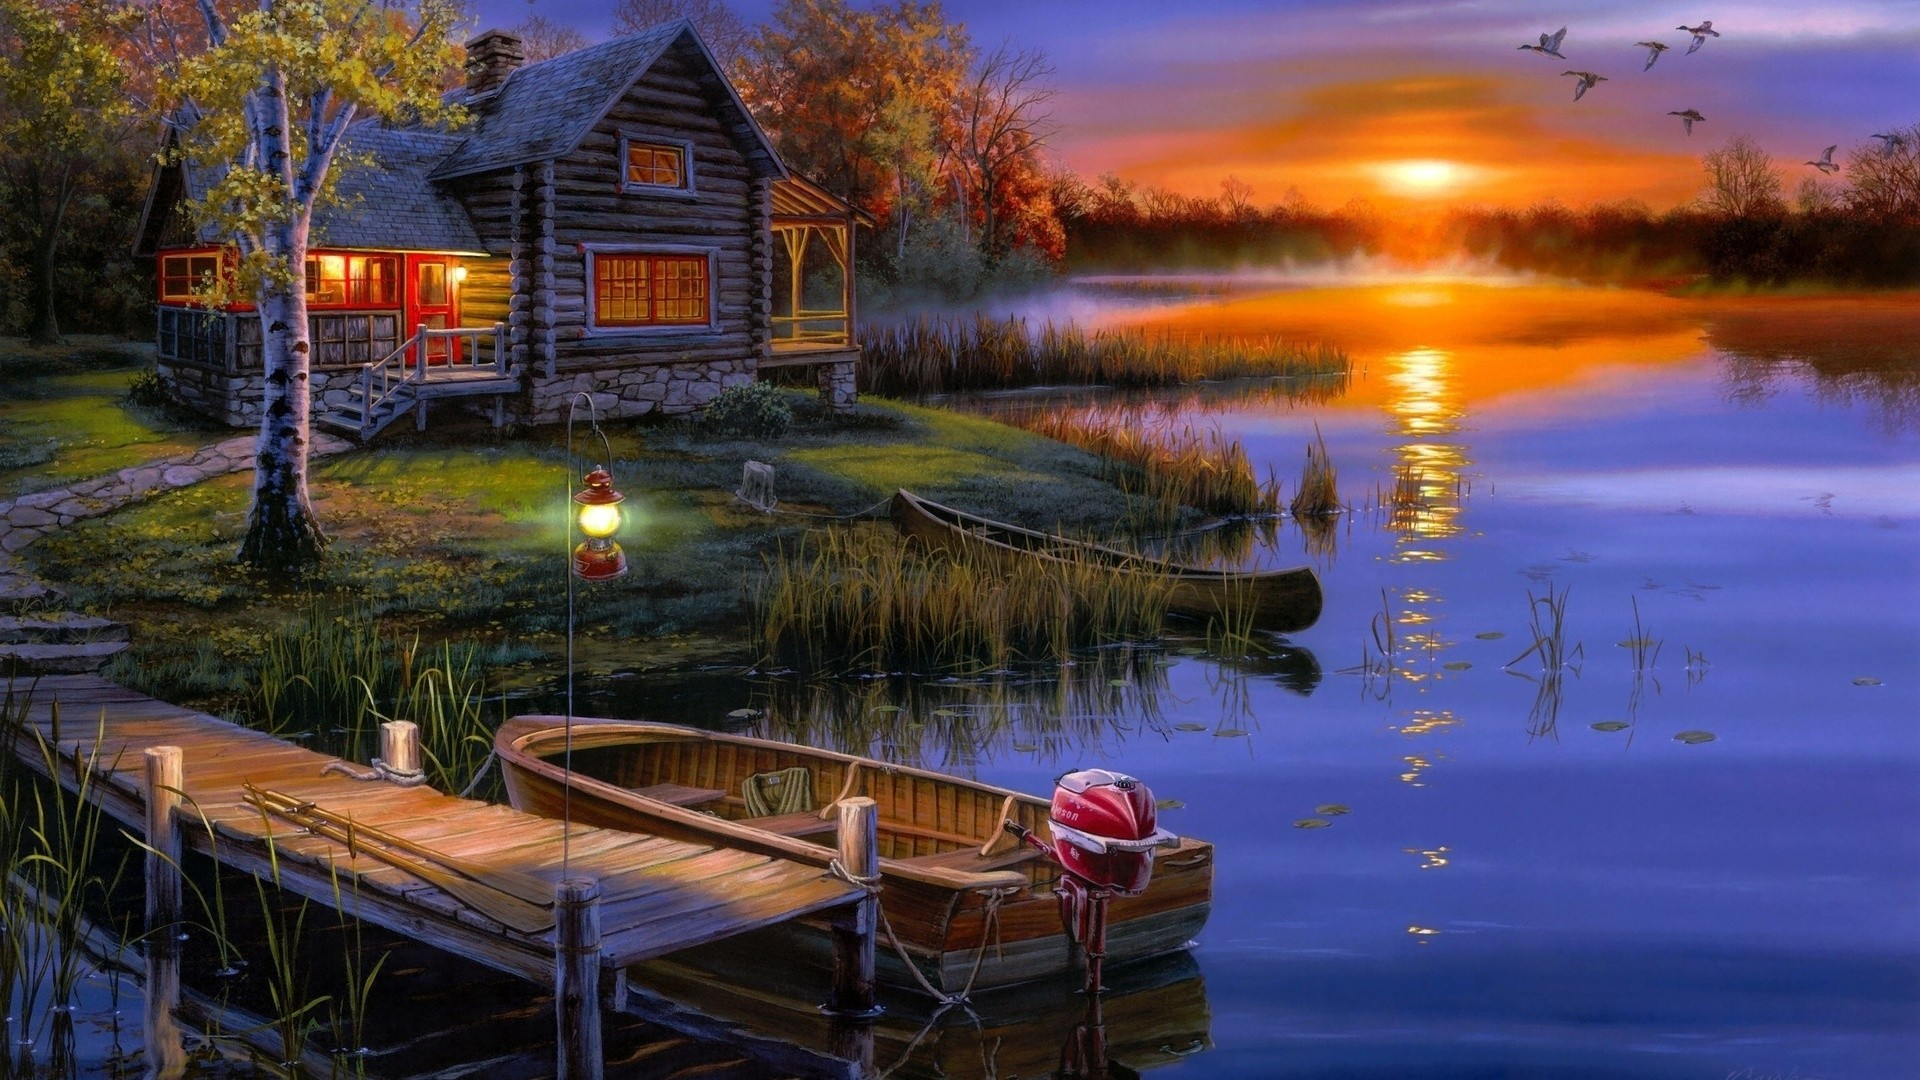 House By The River Art Background Wallpaper